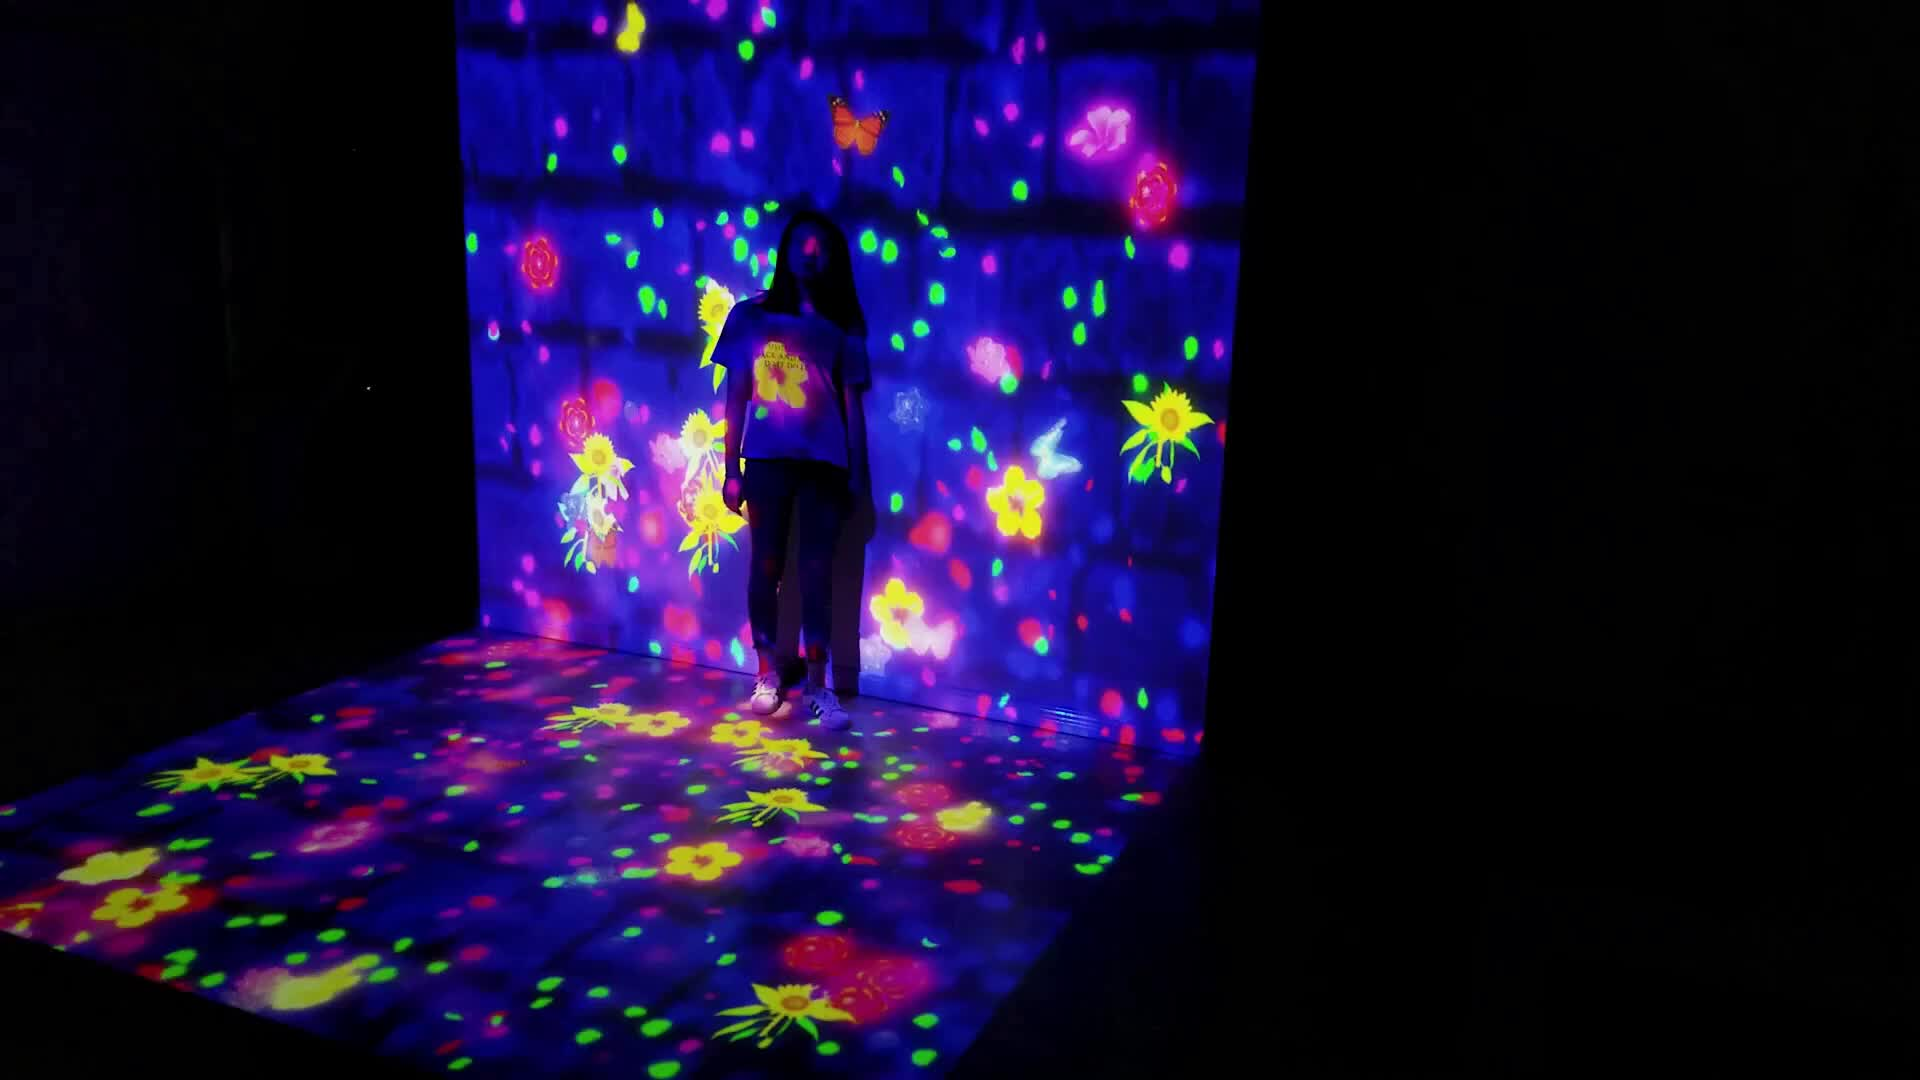 Waterfall And Flower Immersive Projection Universe Of